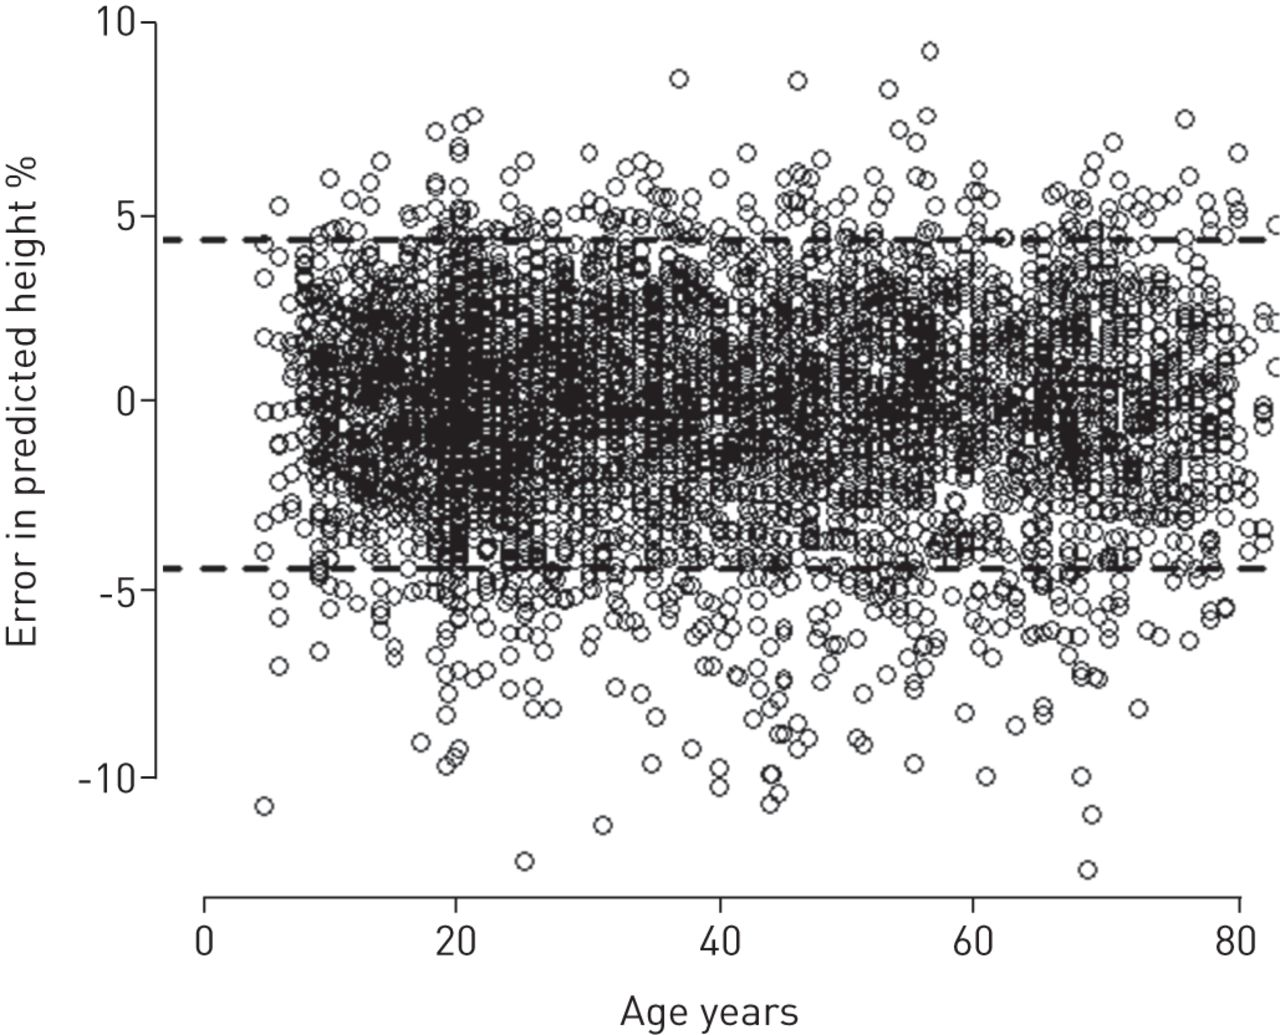 All-age relationship between arm span and height in